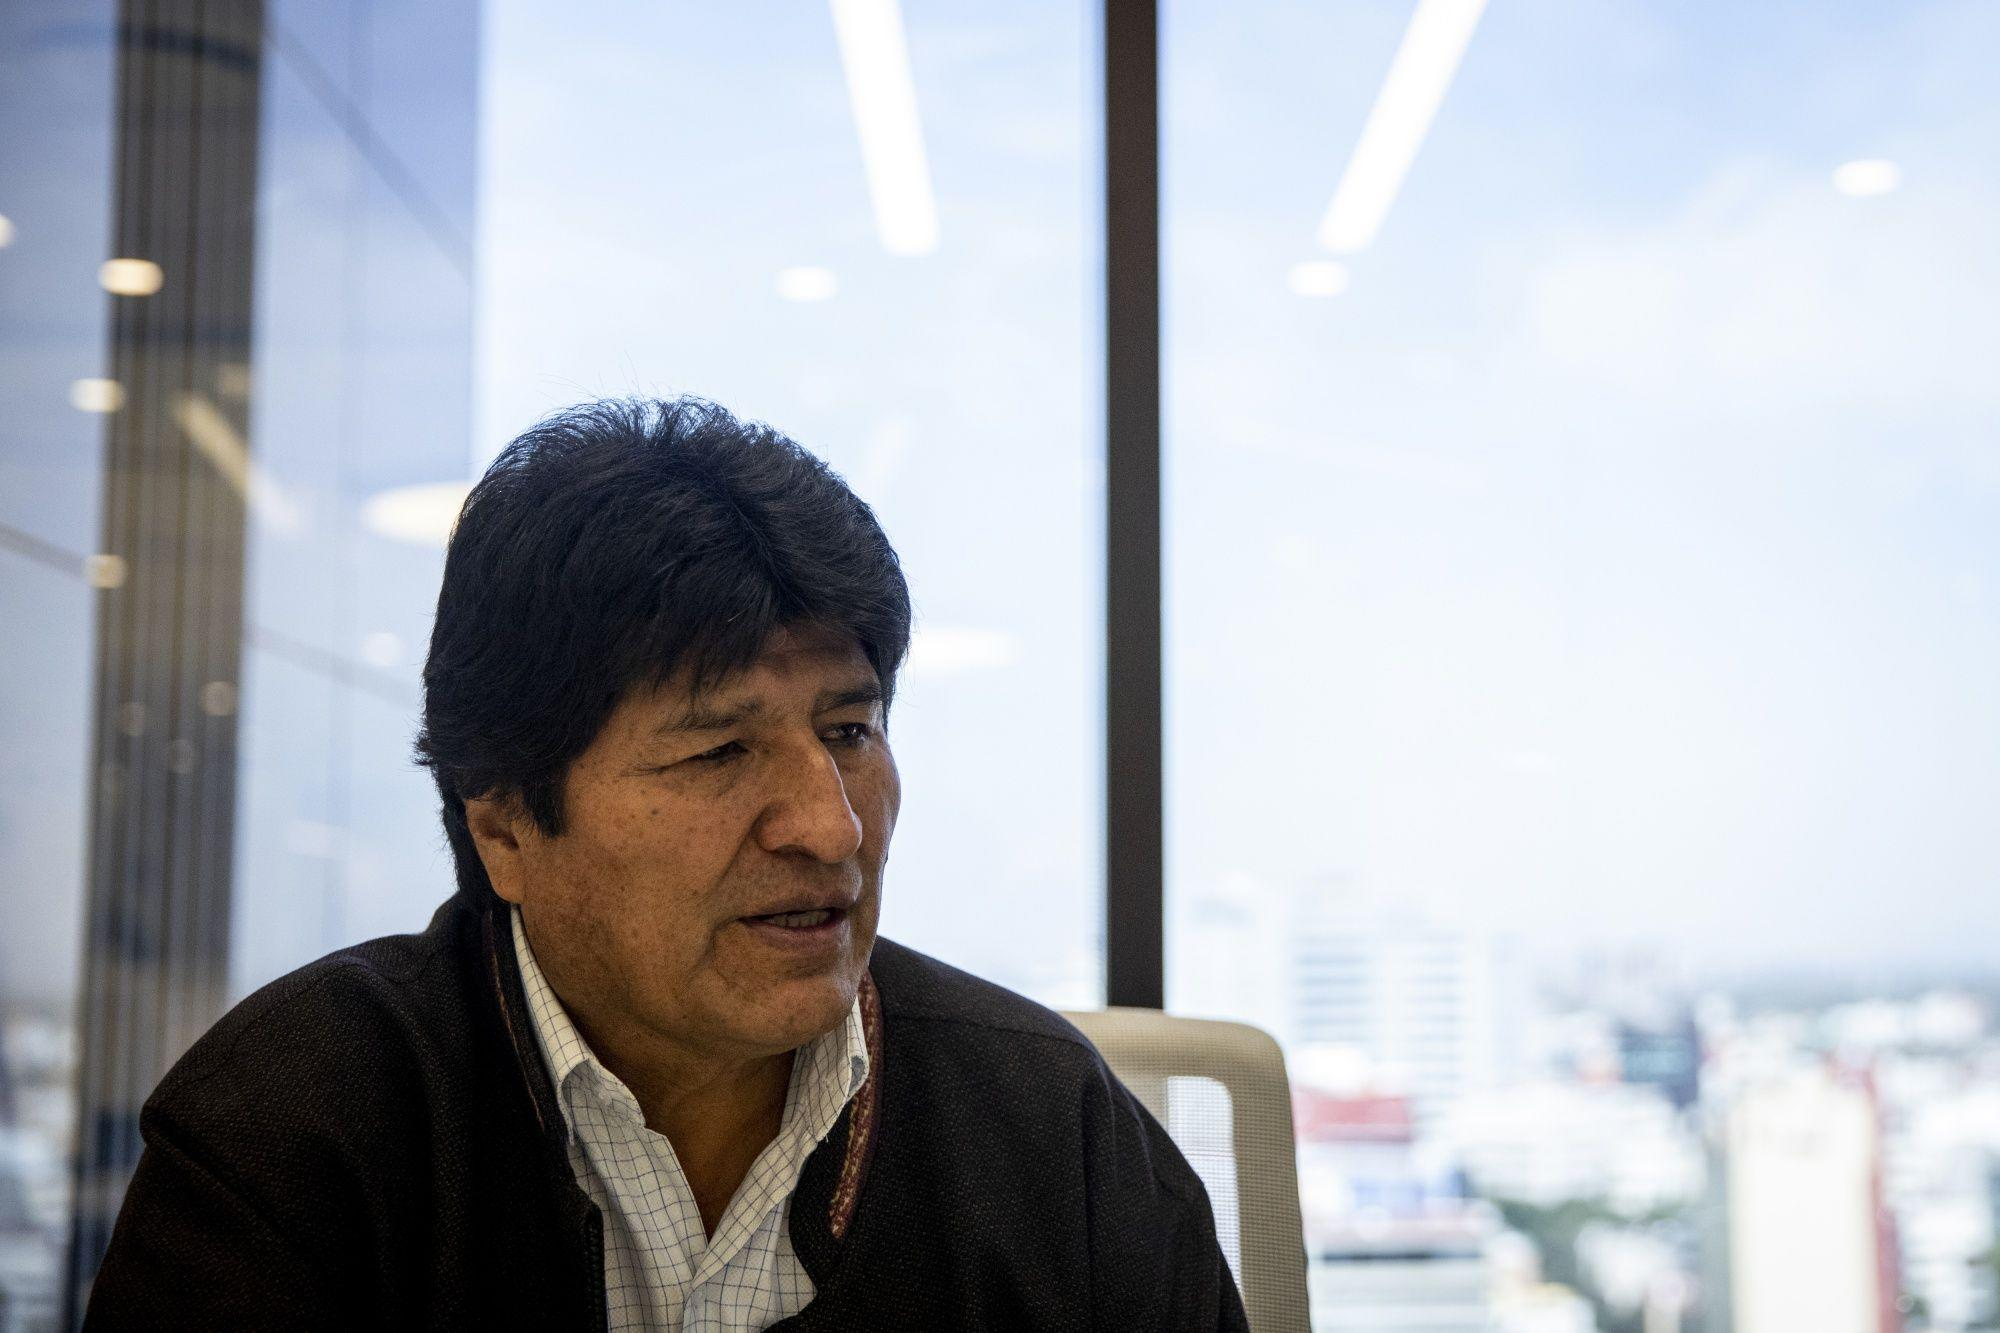 Bolivia's former president Morales arrives in Argentina to seek asylum